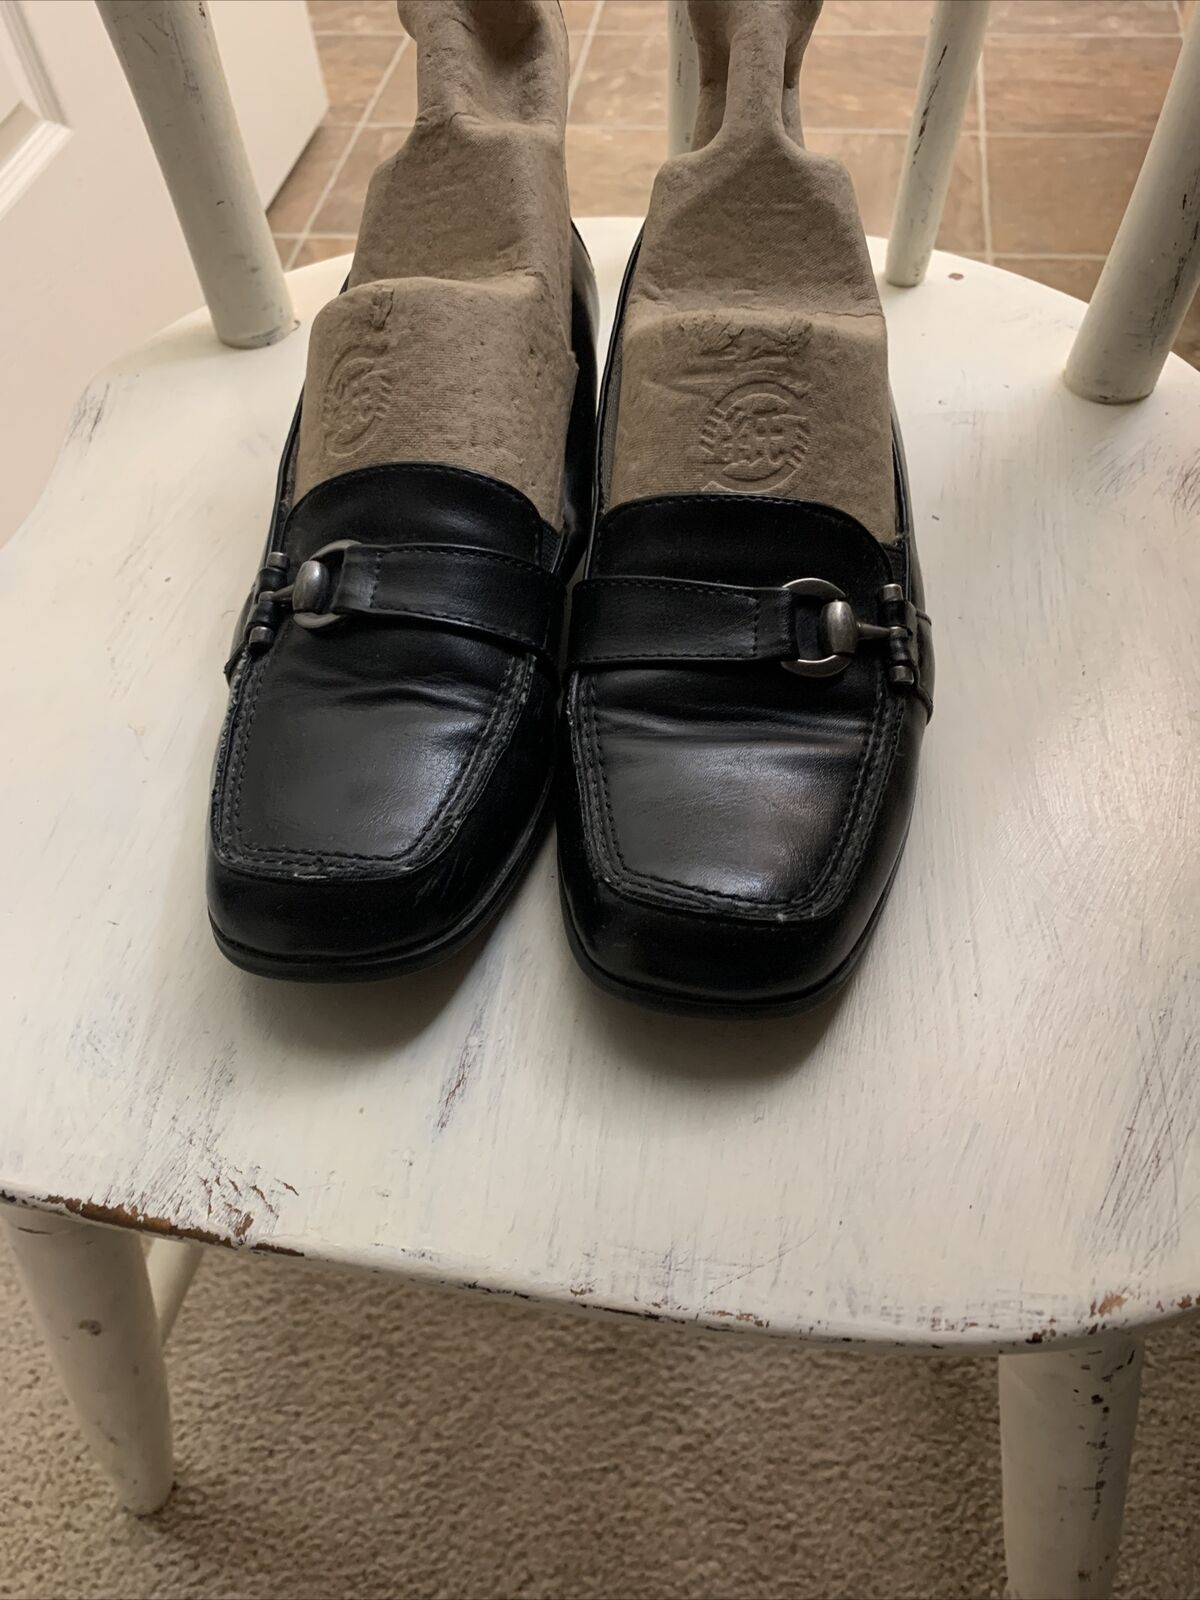 life stride shoes size 7 Black Man made Materials, Low Heel Dk Silver Adornments